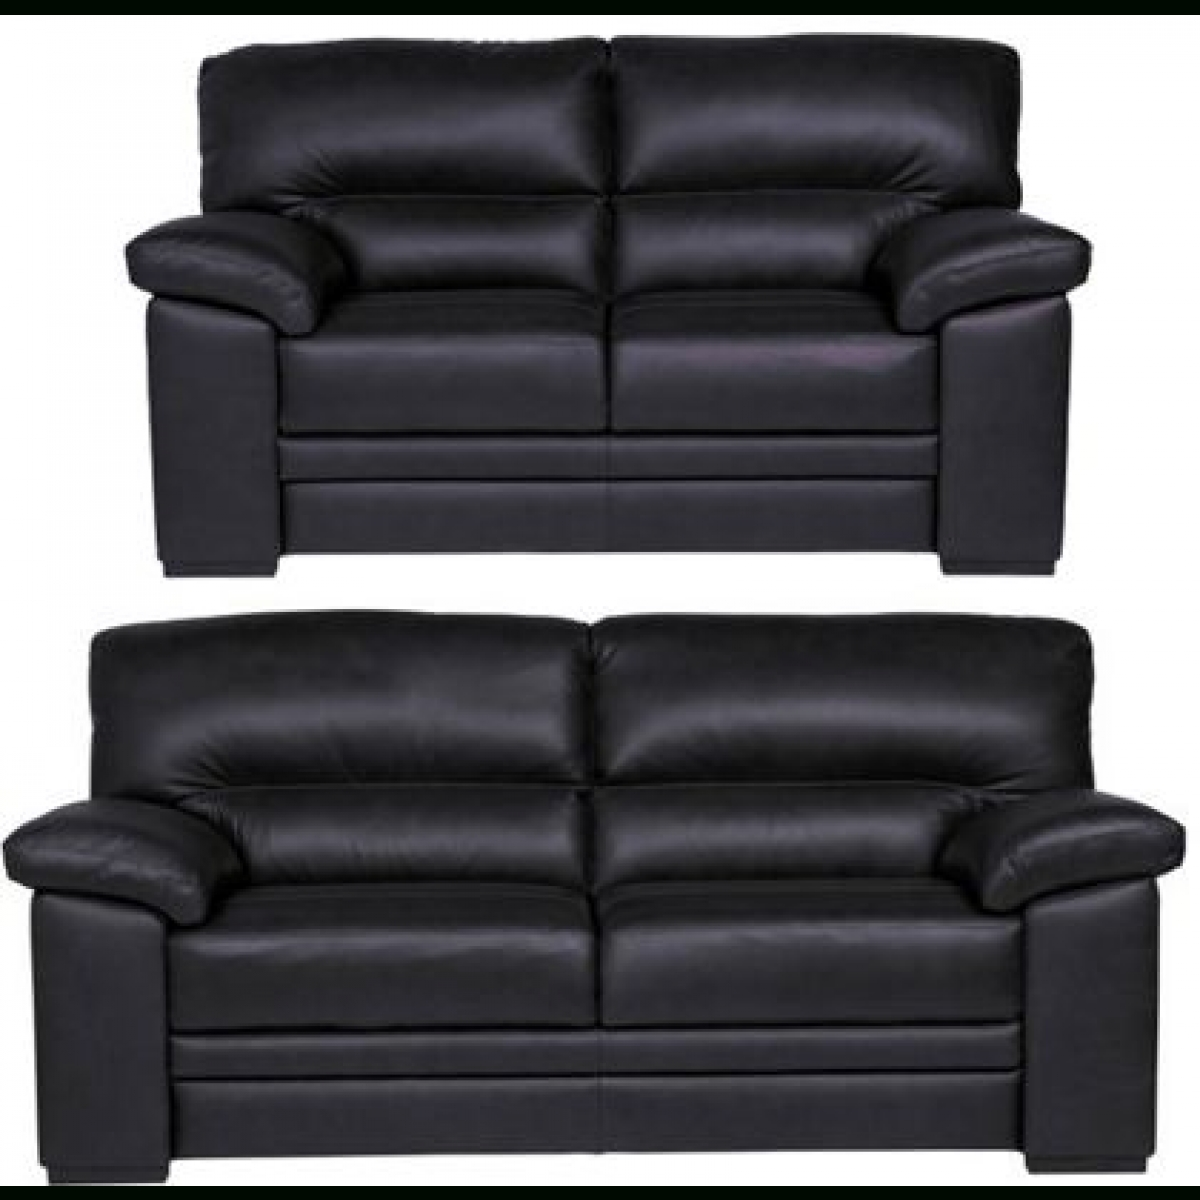 Piacenza 3 Seater And 2 Seater Sofa – Black – Furnico Village Pertaining To Black 2 Seater Sofas (Image 18 of 20)